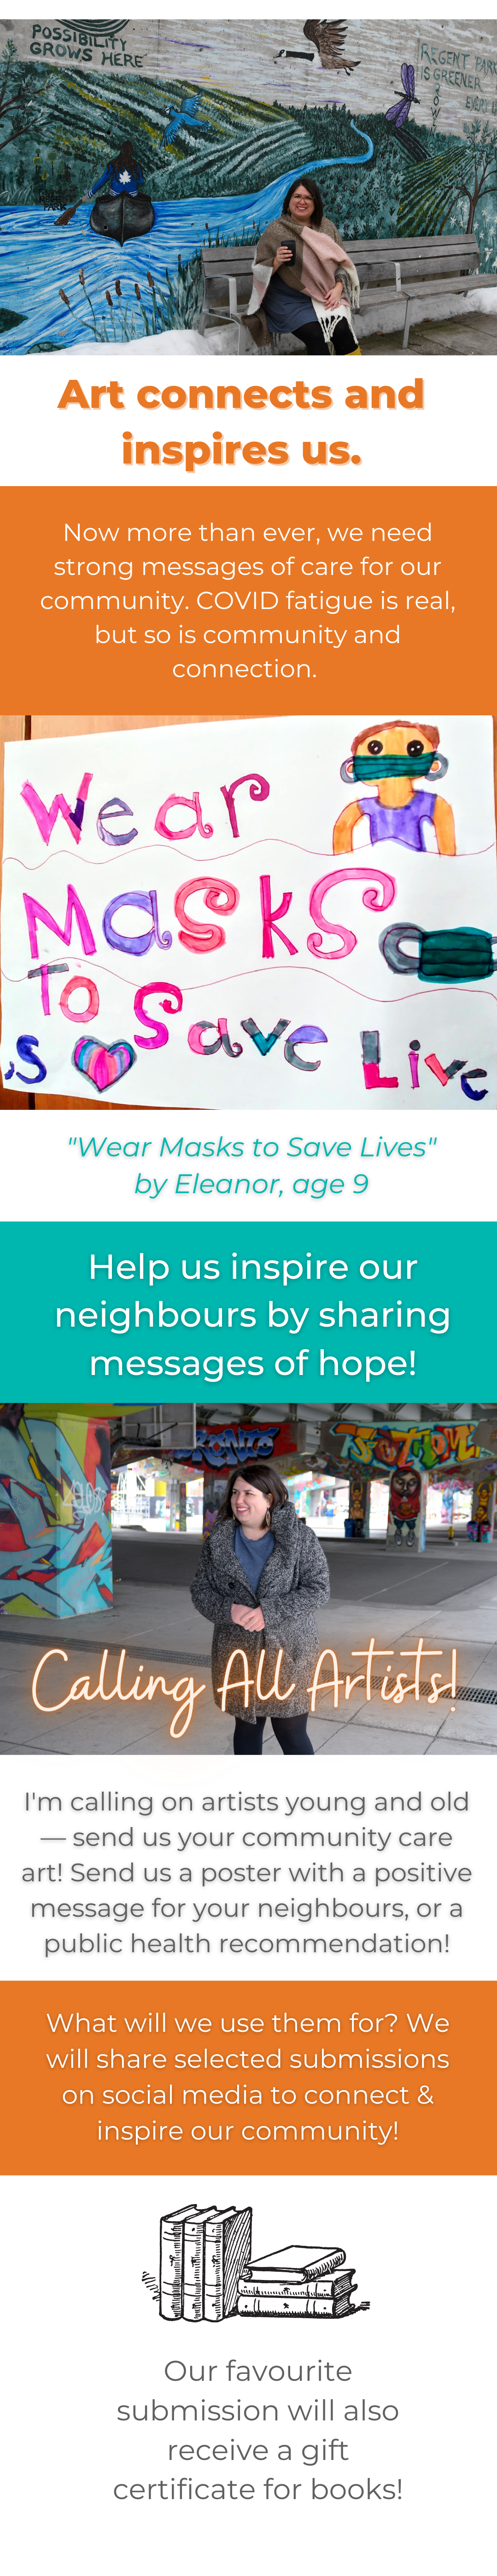 "Art connects and inspires us. Now more than ever, we need strong messages of care for our community. COVID fatigue is real, but so is community and connection. ""Wear Masks to Save Lives"" by Eleanor, age 9 Help us inspire our neighbours by sharing messages of hope! Calling All Artists! I'm calling on artists young and old — send us your community care art! Send us a poster with a positive message for your neighbours, or a public health recommendation! What will we use them for? We will share selected submissions on social media to connect & inspire our community! Our favourite submission will also receive a gift certificate for books!"